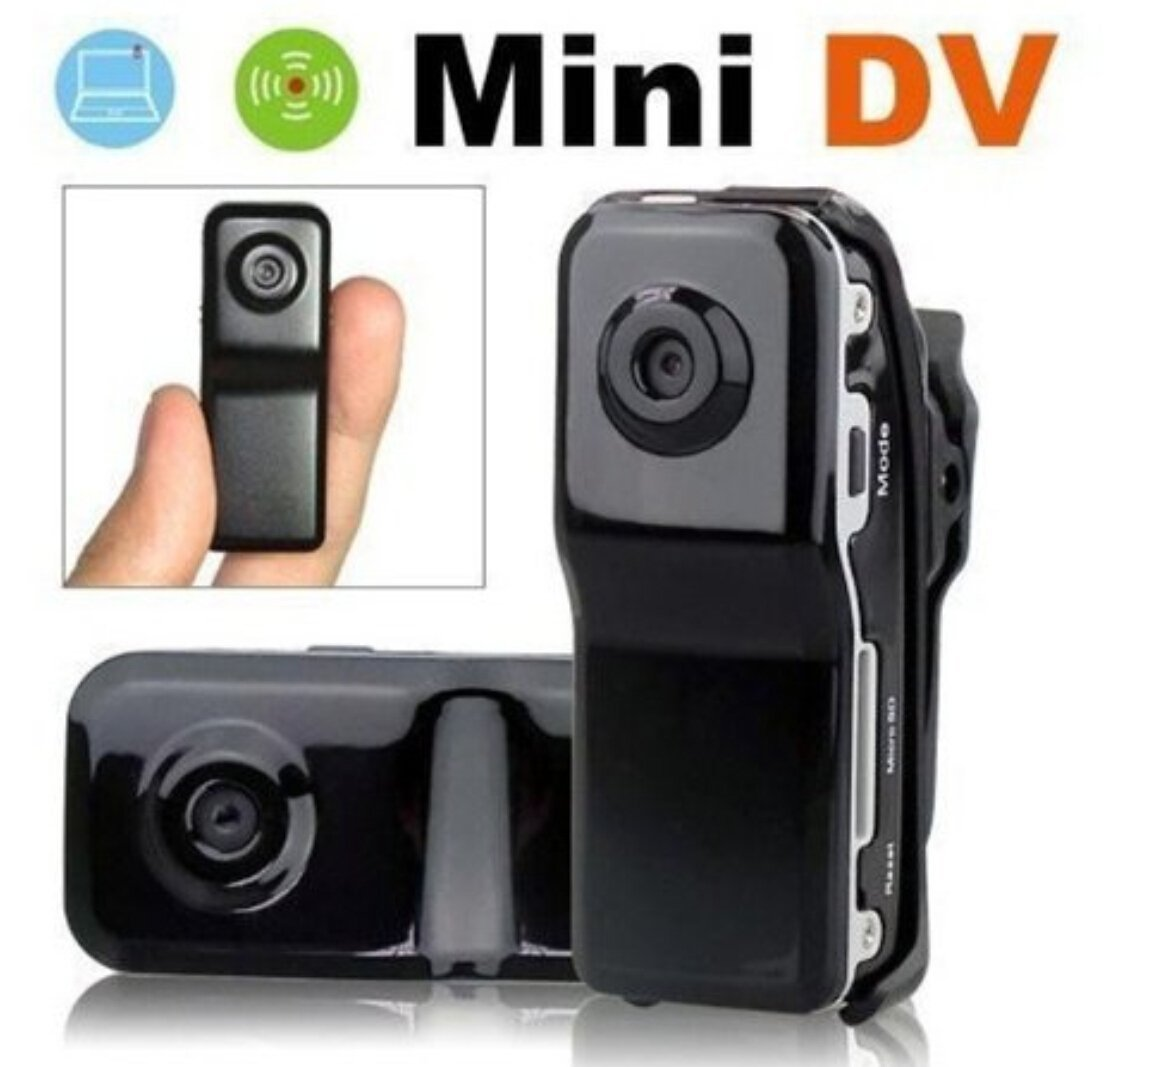 MD80 Super Mini Camera Secret Camcorder Digital Video Audio Recorder DV DVR for Sport Helmet Car Bicycle Micro Cam with Holders mini dv md80 dvr video camera 720p hd dvr sport outdoors with an audio support and clip